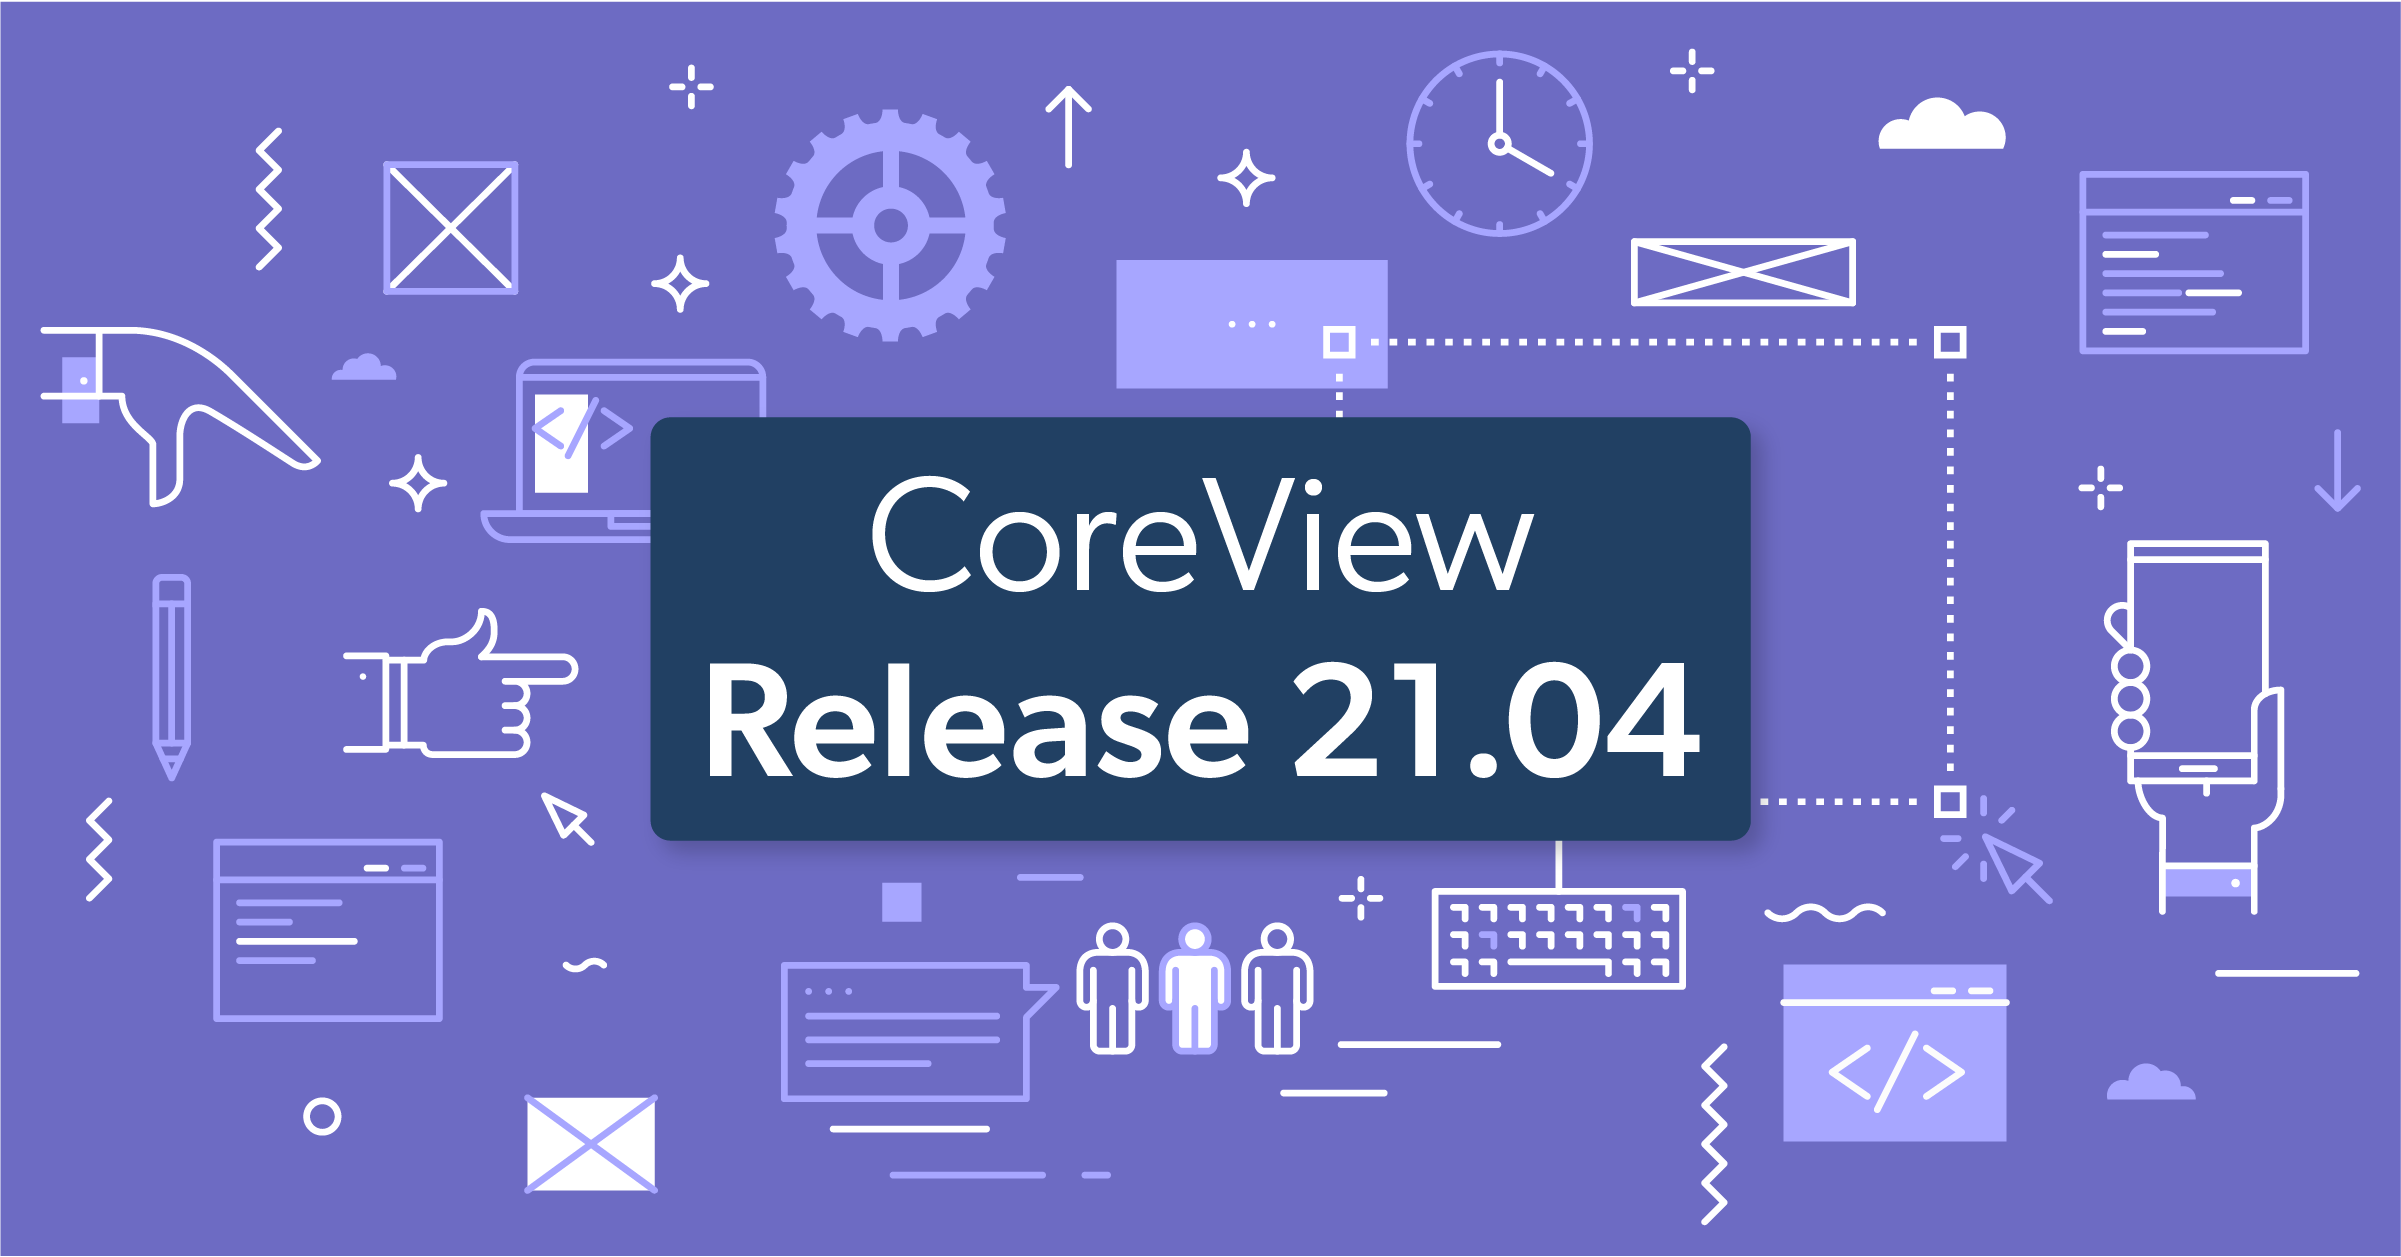 CoreView Release 21.04